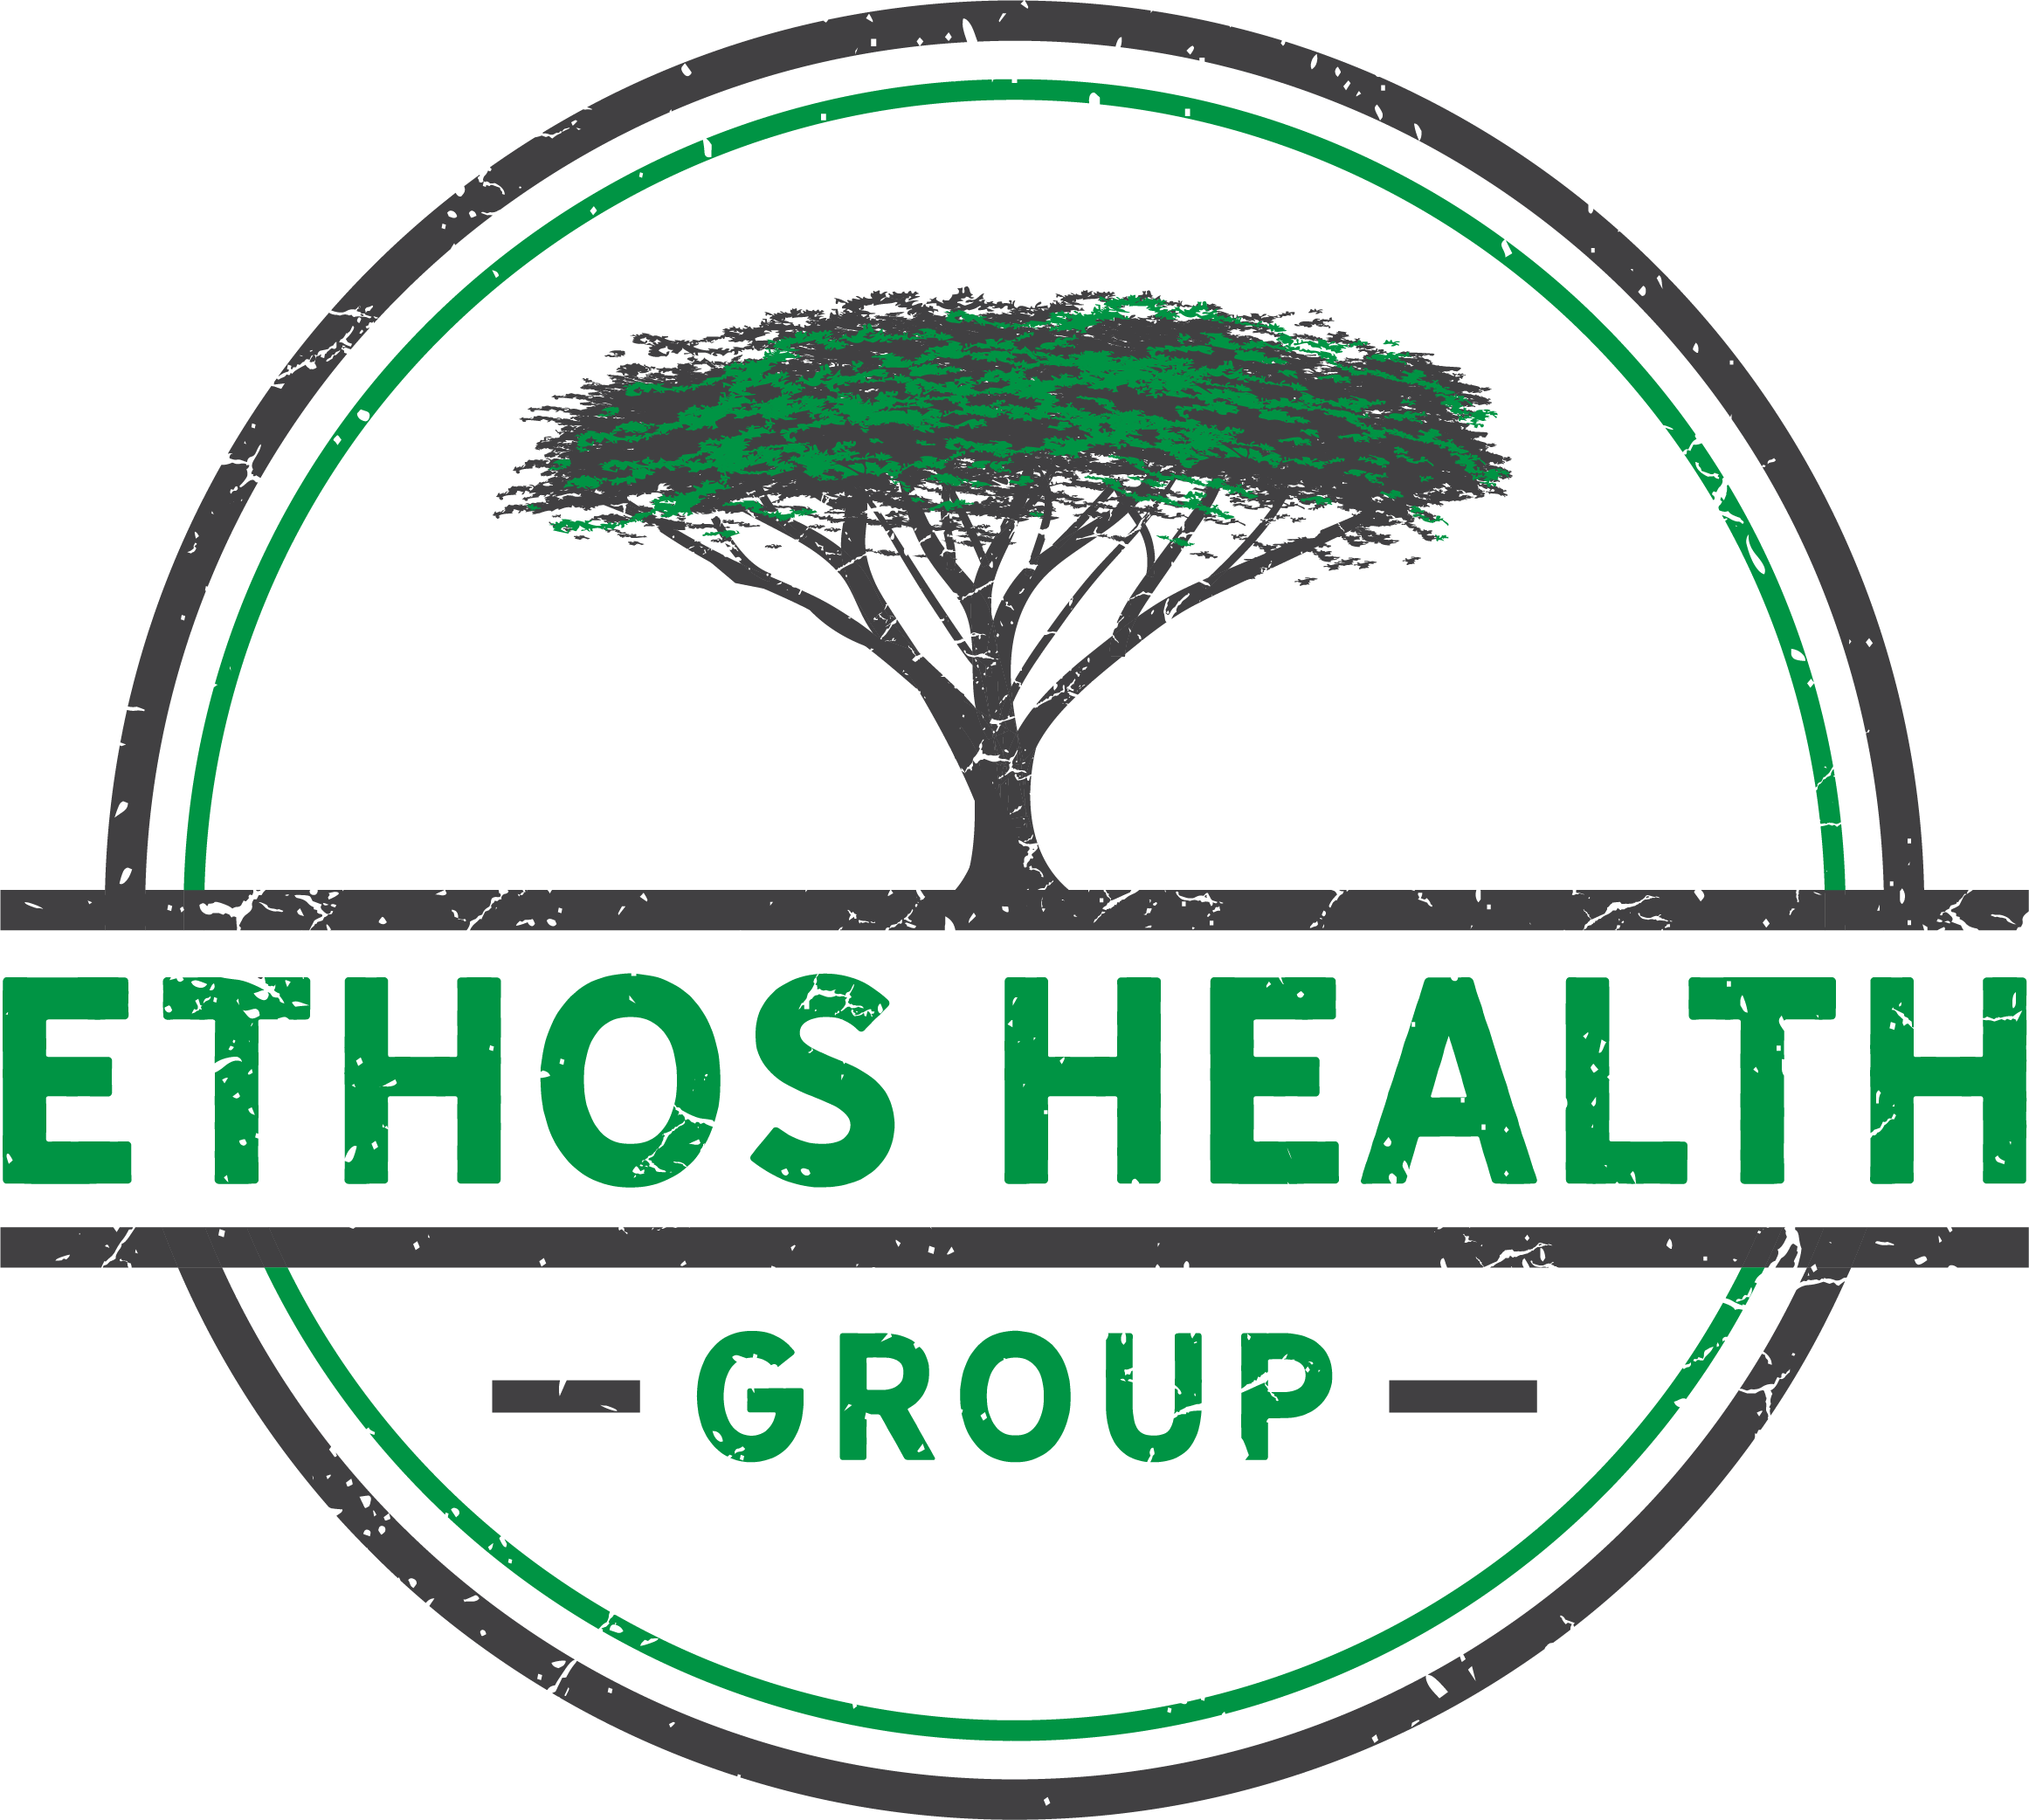 Ethos Health Group